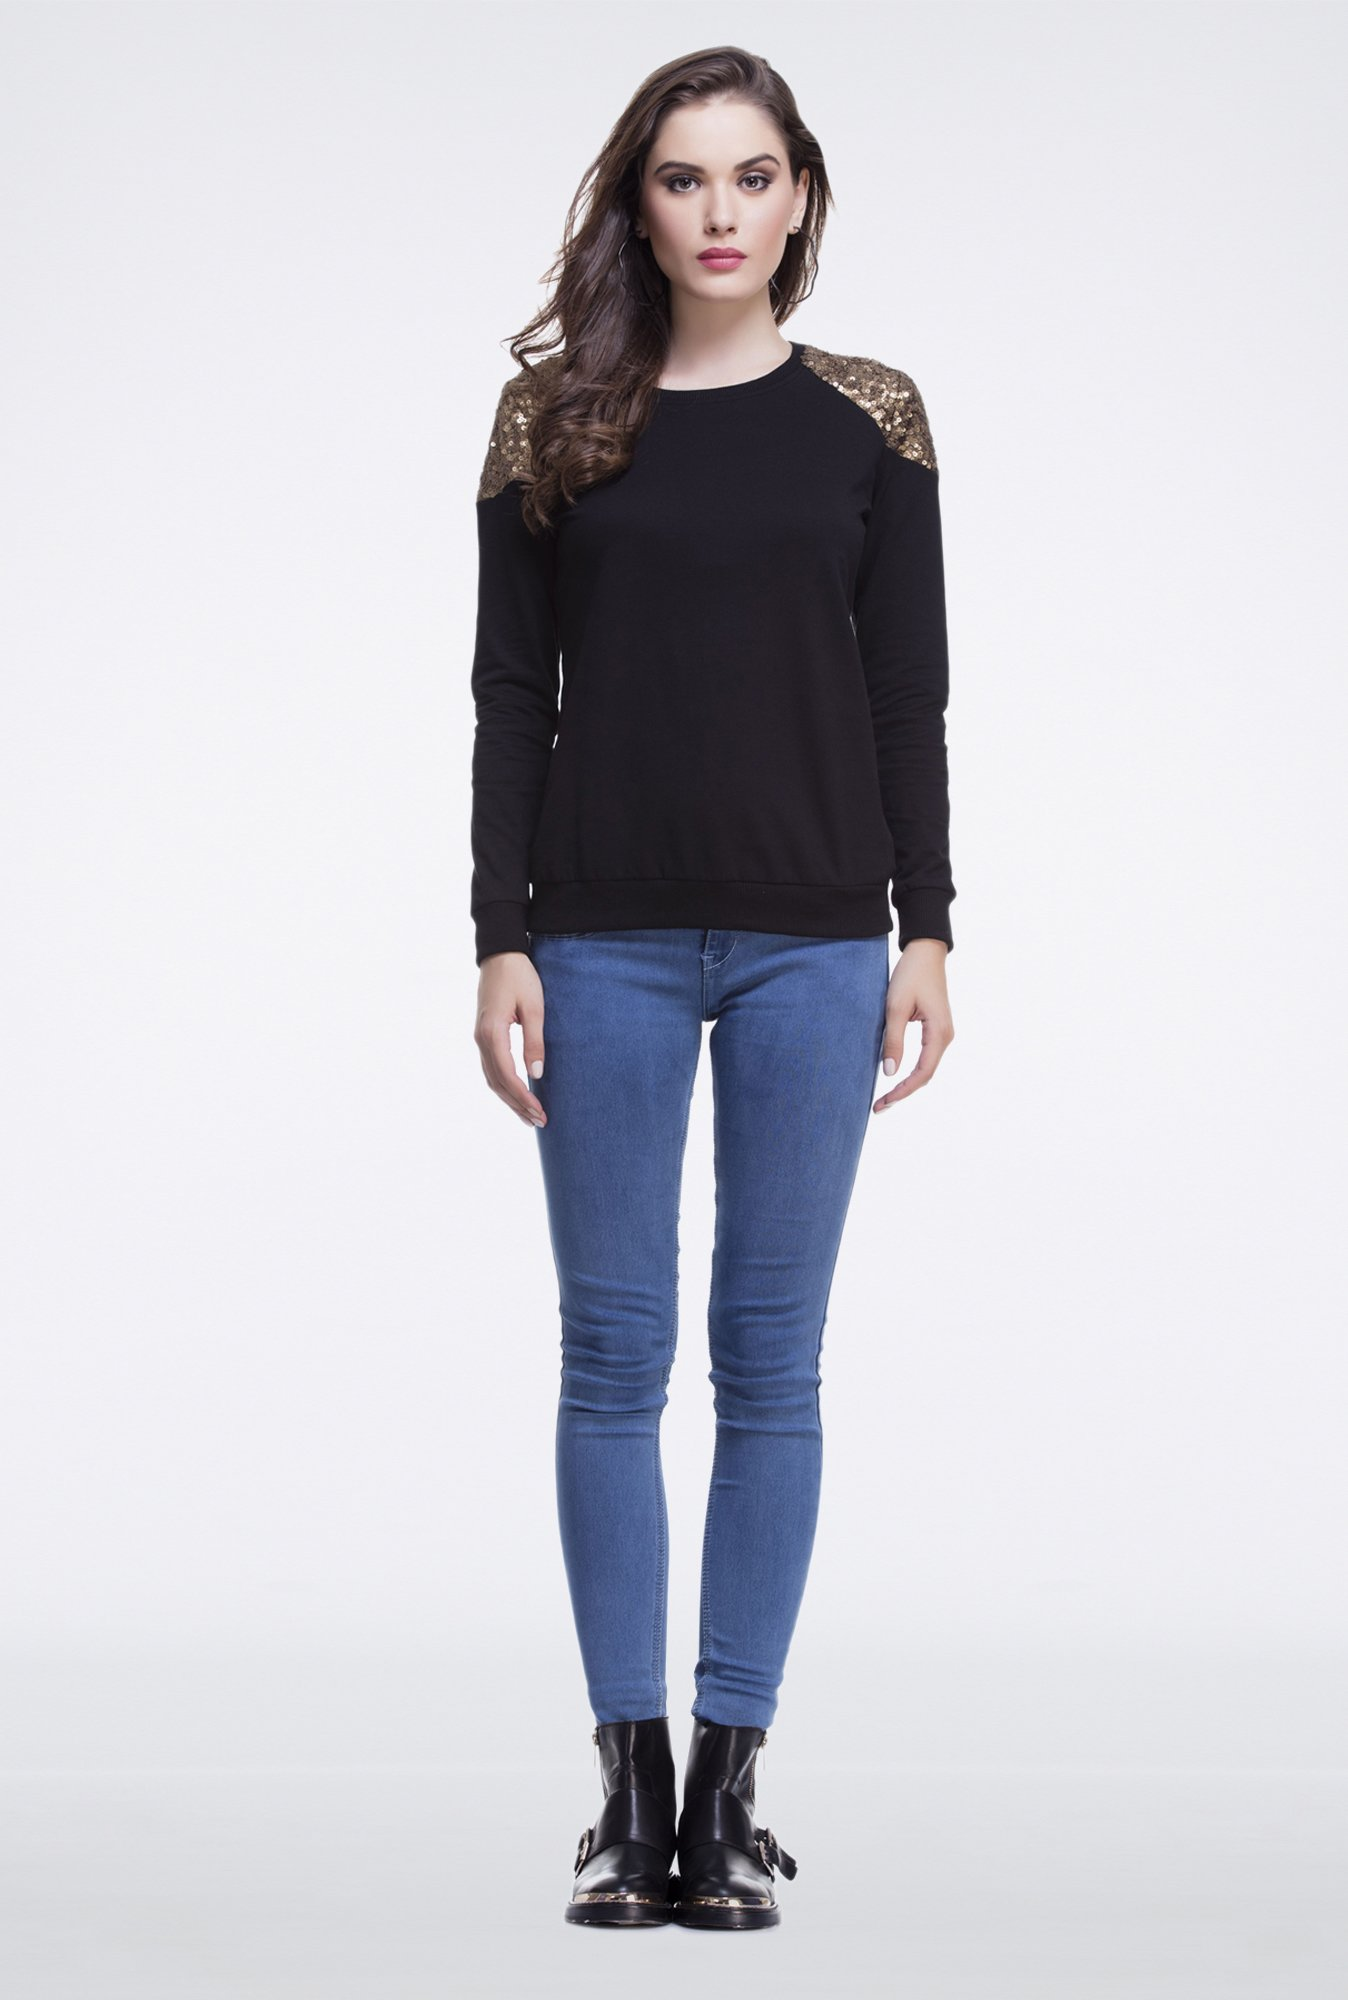 Femella Black Shoulder Sequins Pullover